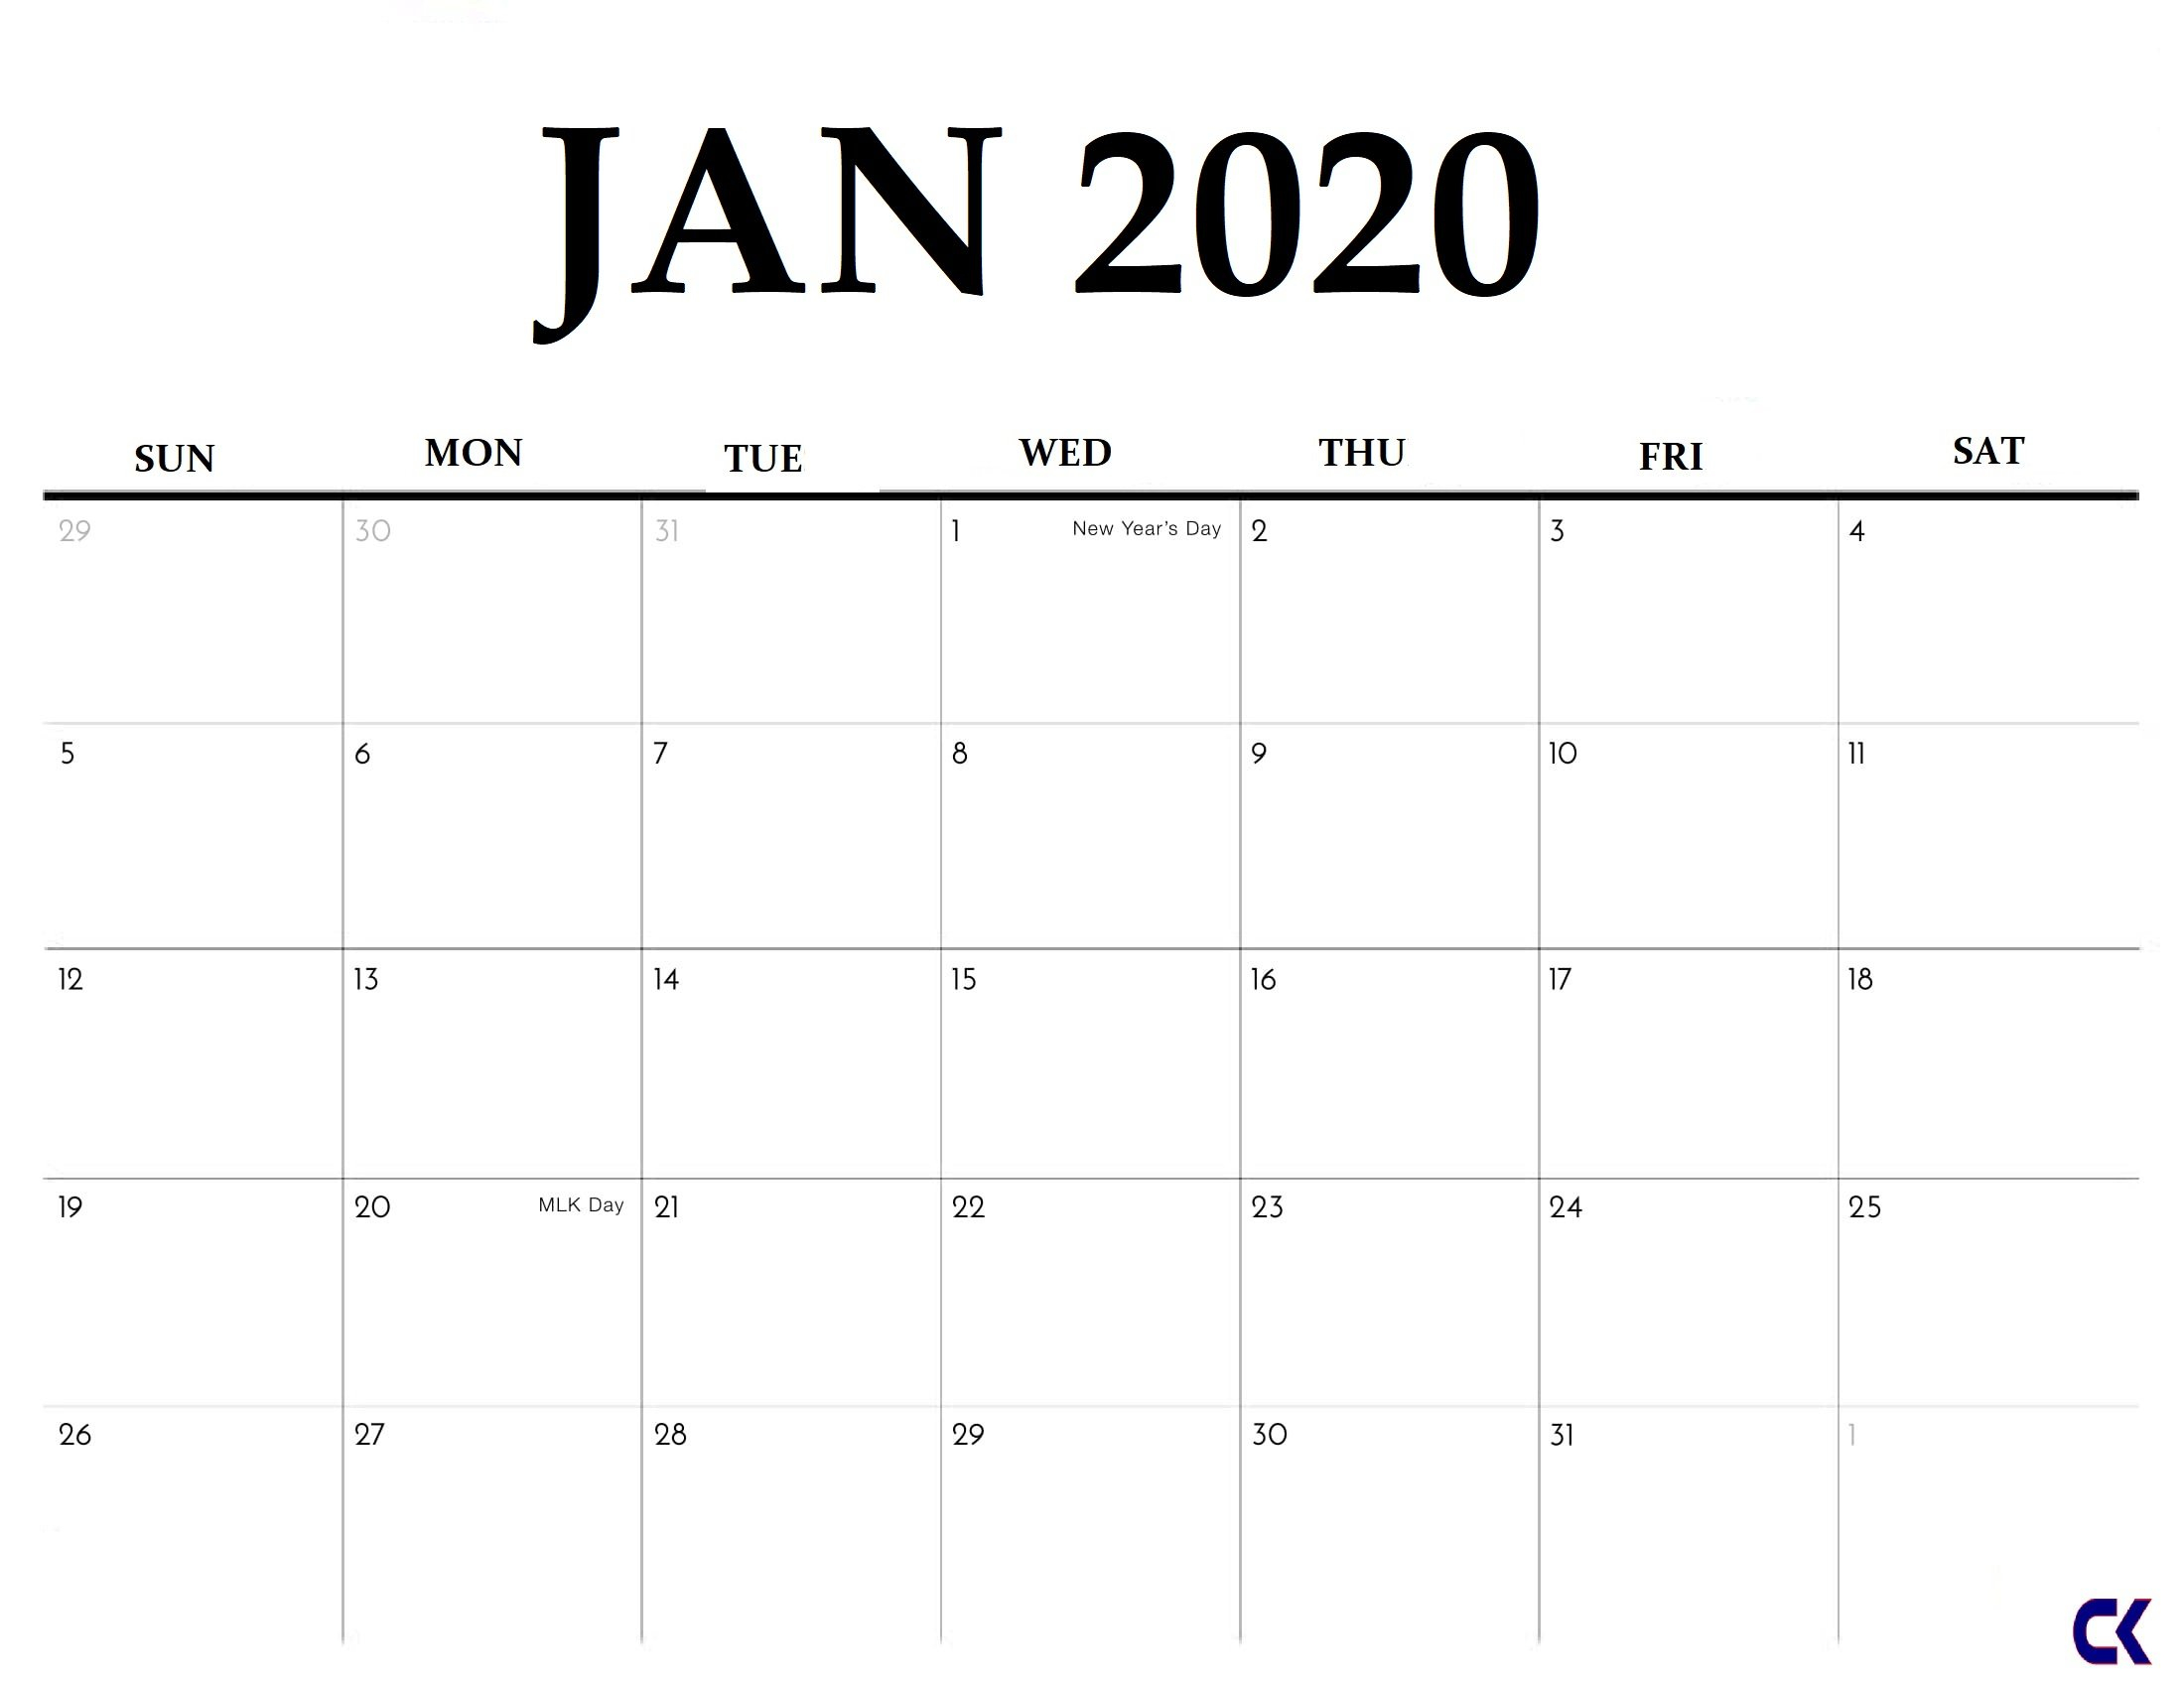 Free Print 2020 Calendars Without Downloading | Calendar Free Printable Calendar Without Downloading